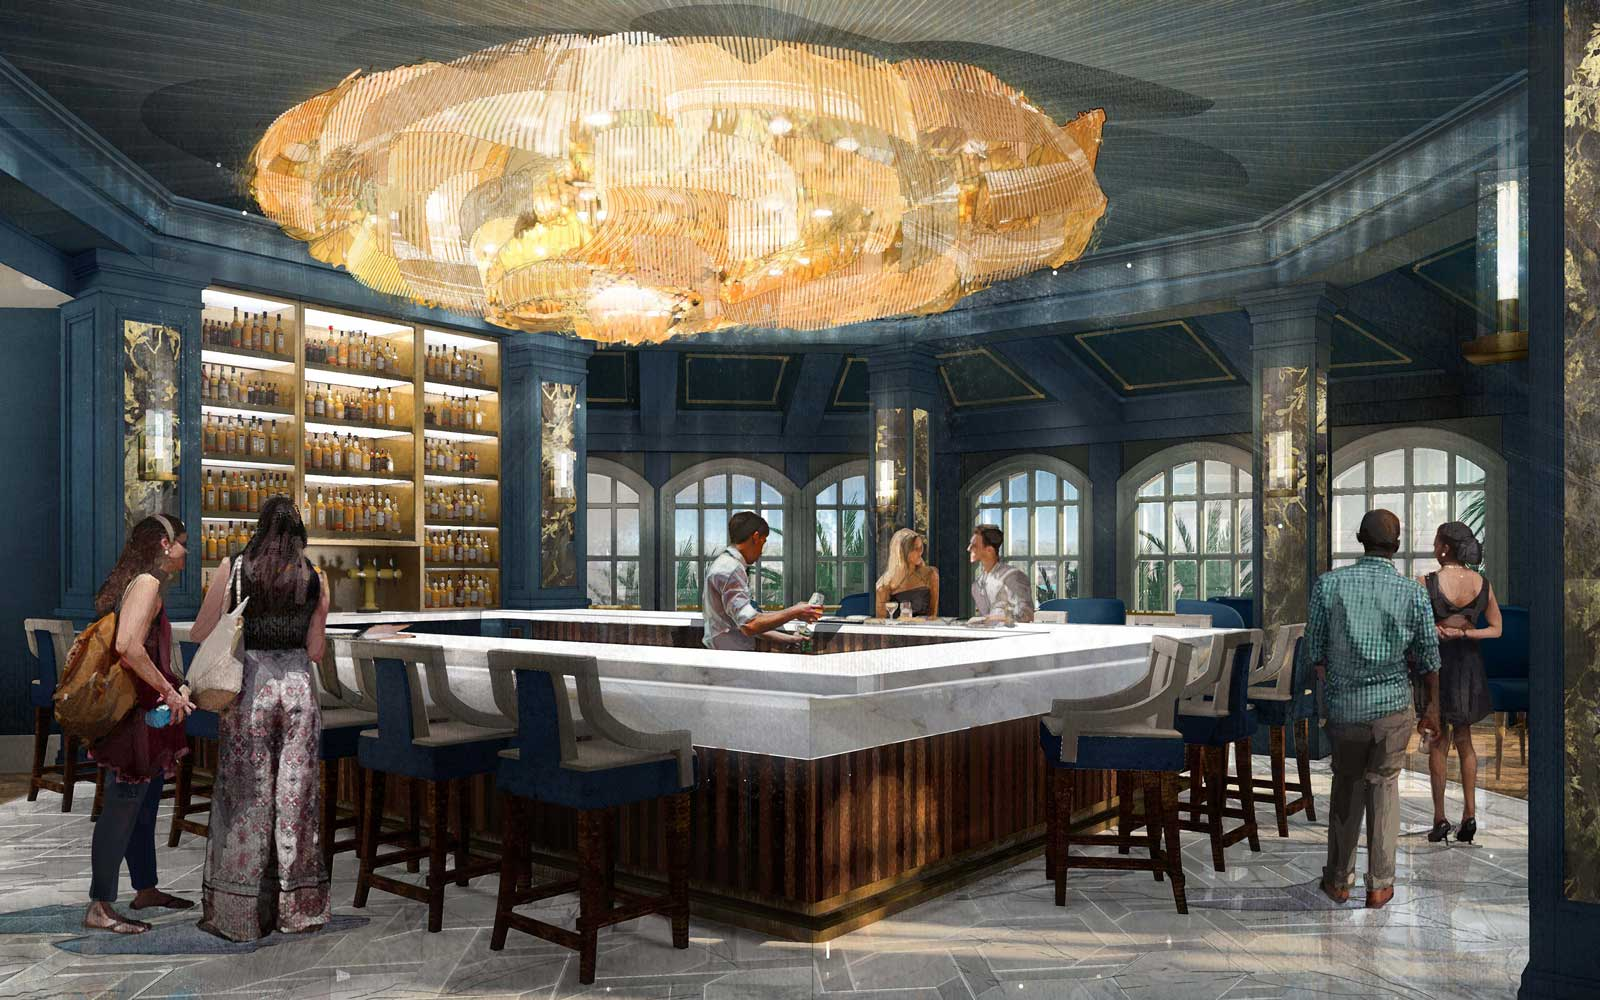 A 'Beauty and the Beast' Themed Bar Is Opening in Disney World